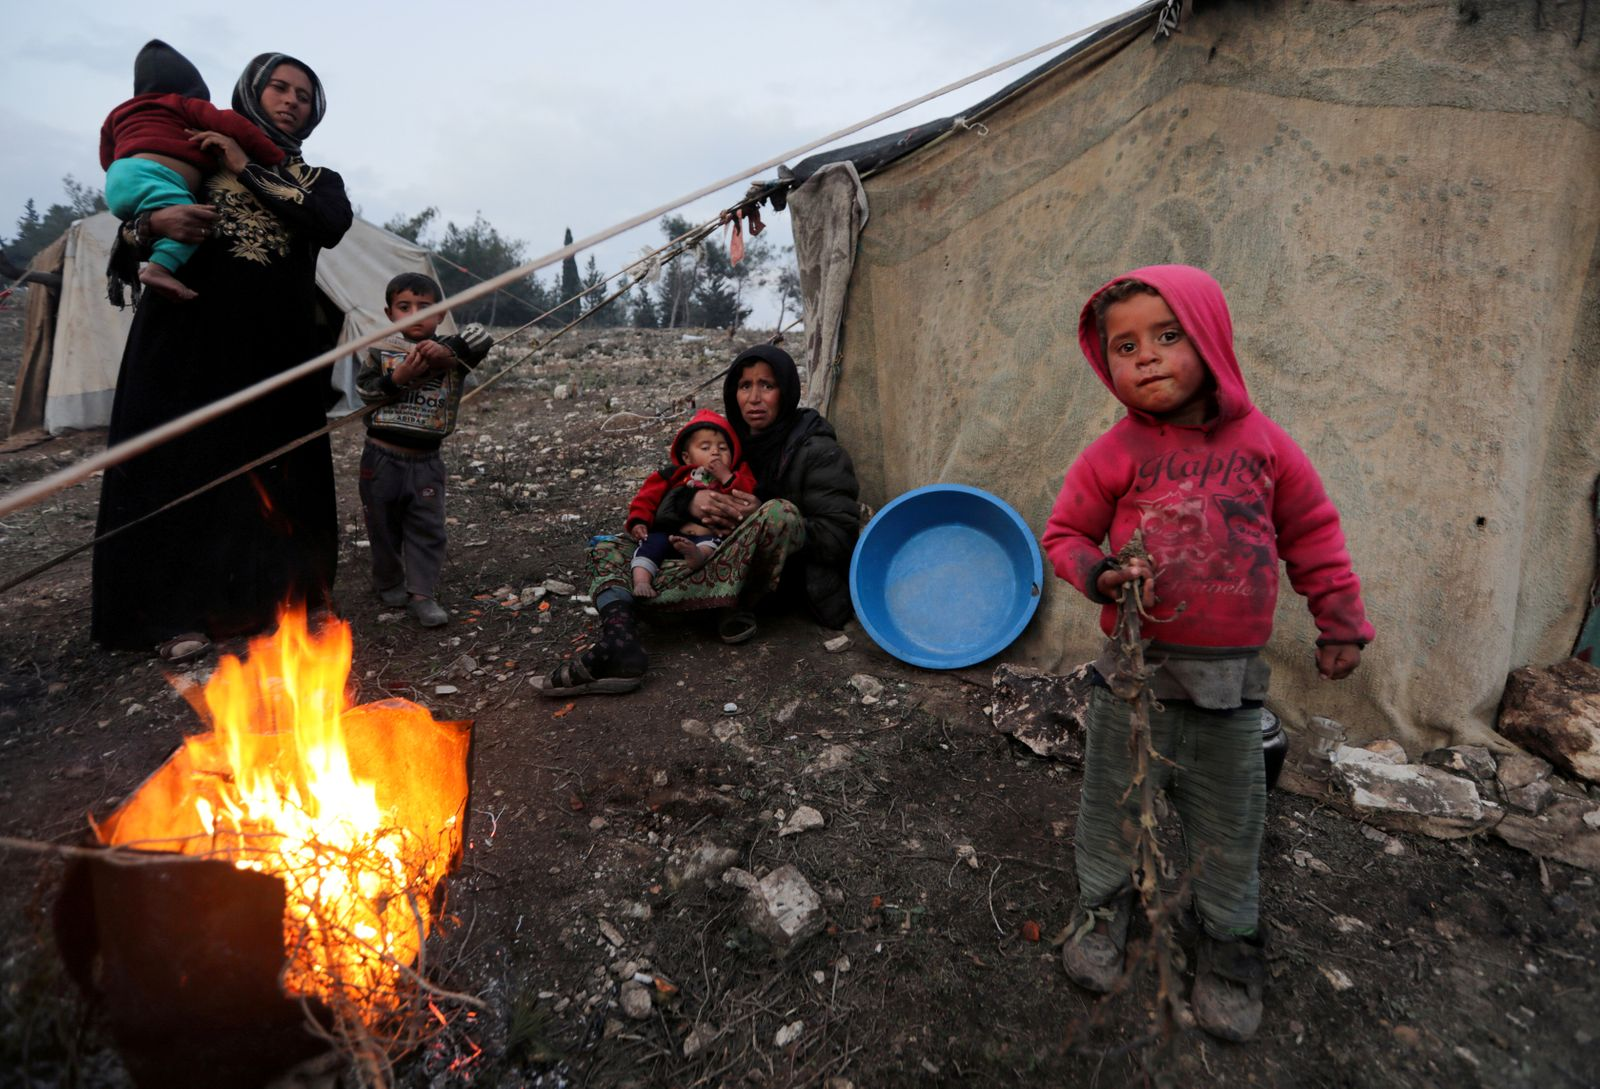 FILE PHOTO: Displaced Syrian women and children, who fled from southern Idlib, gather around a fire in Afrin